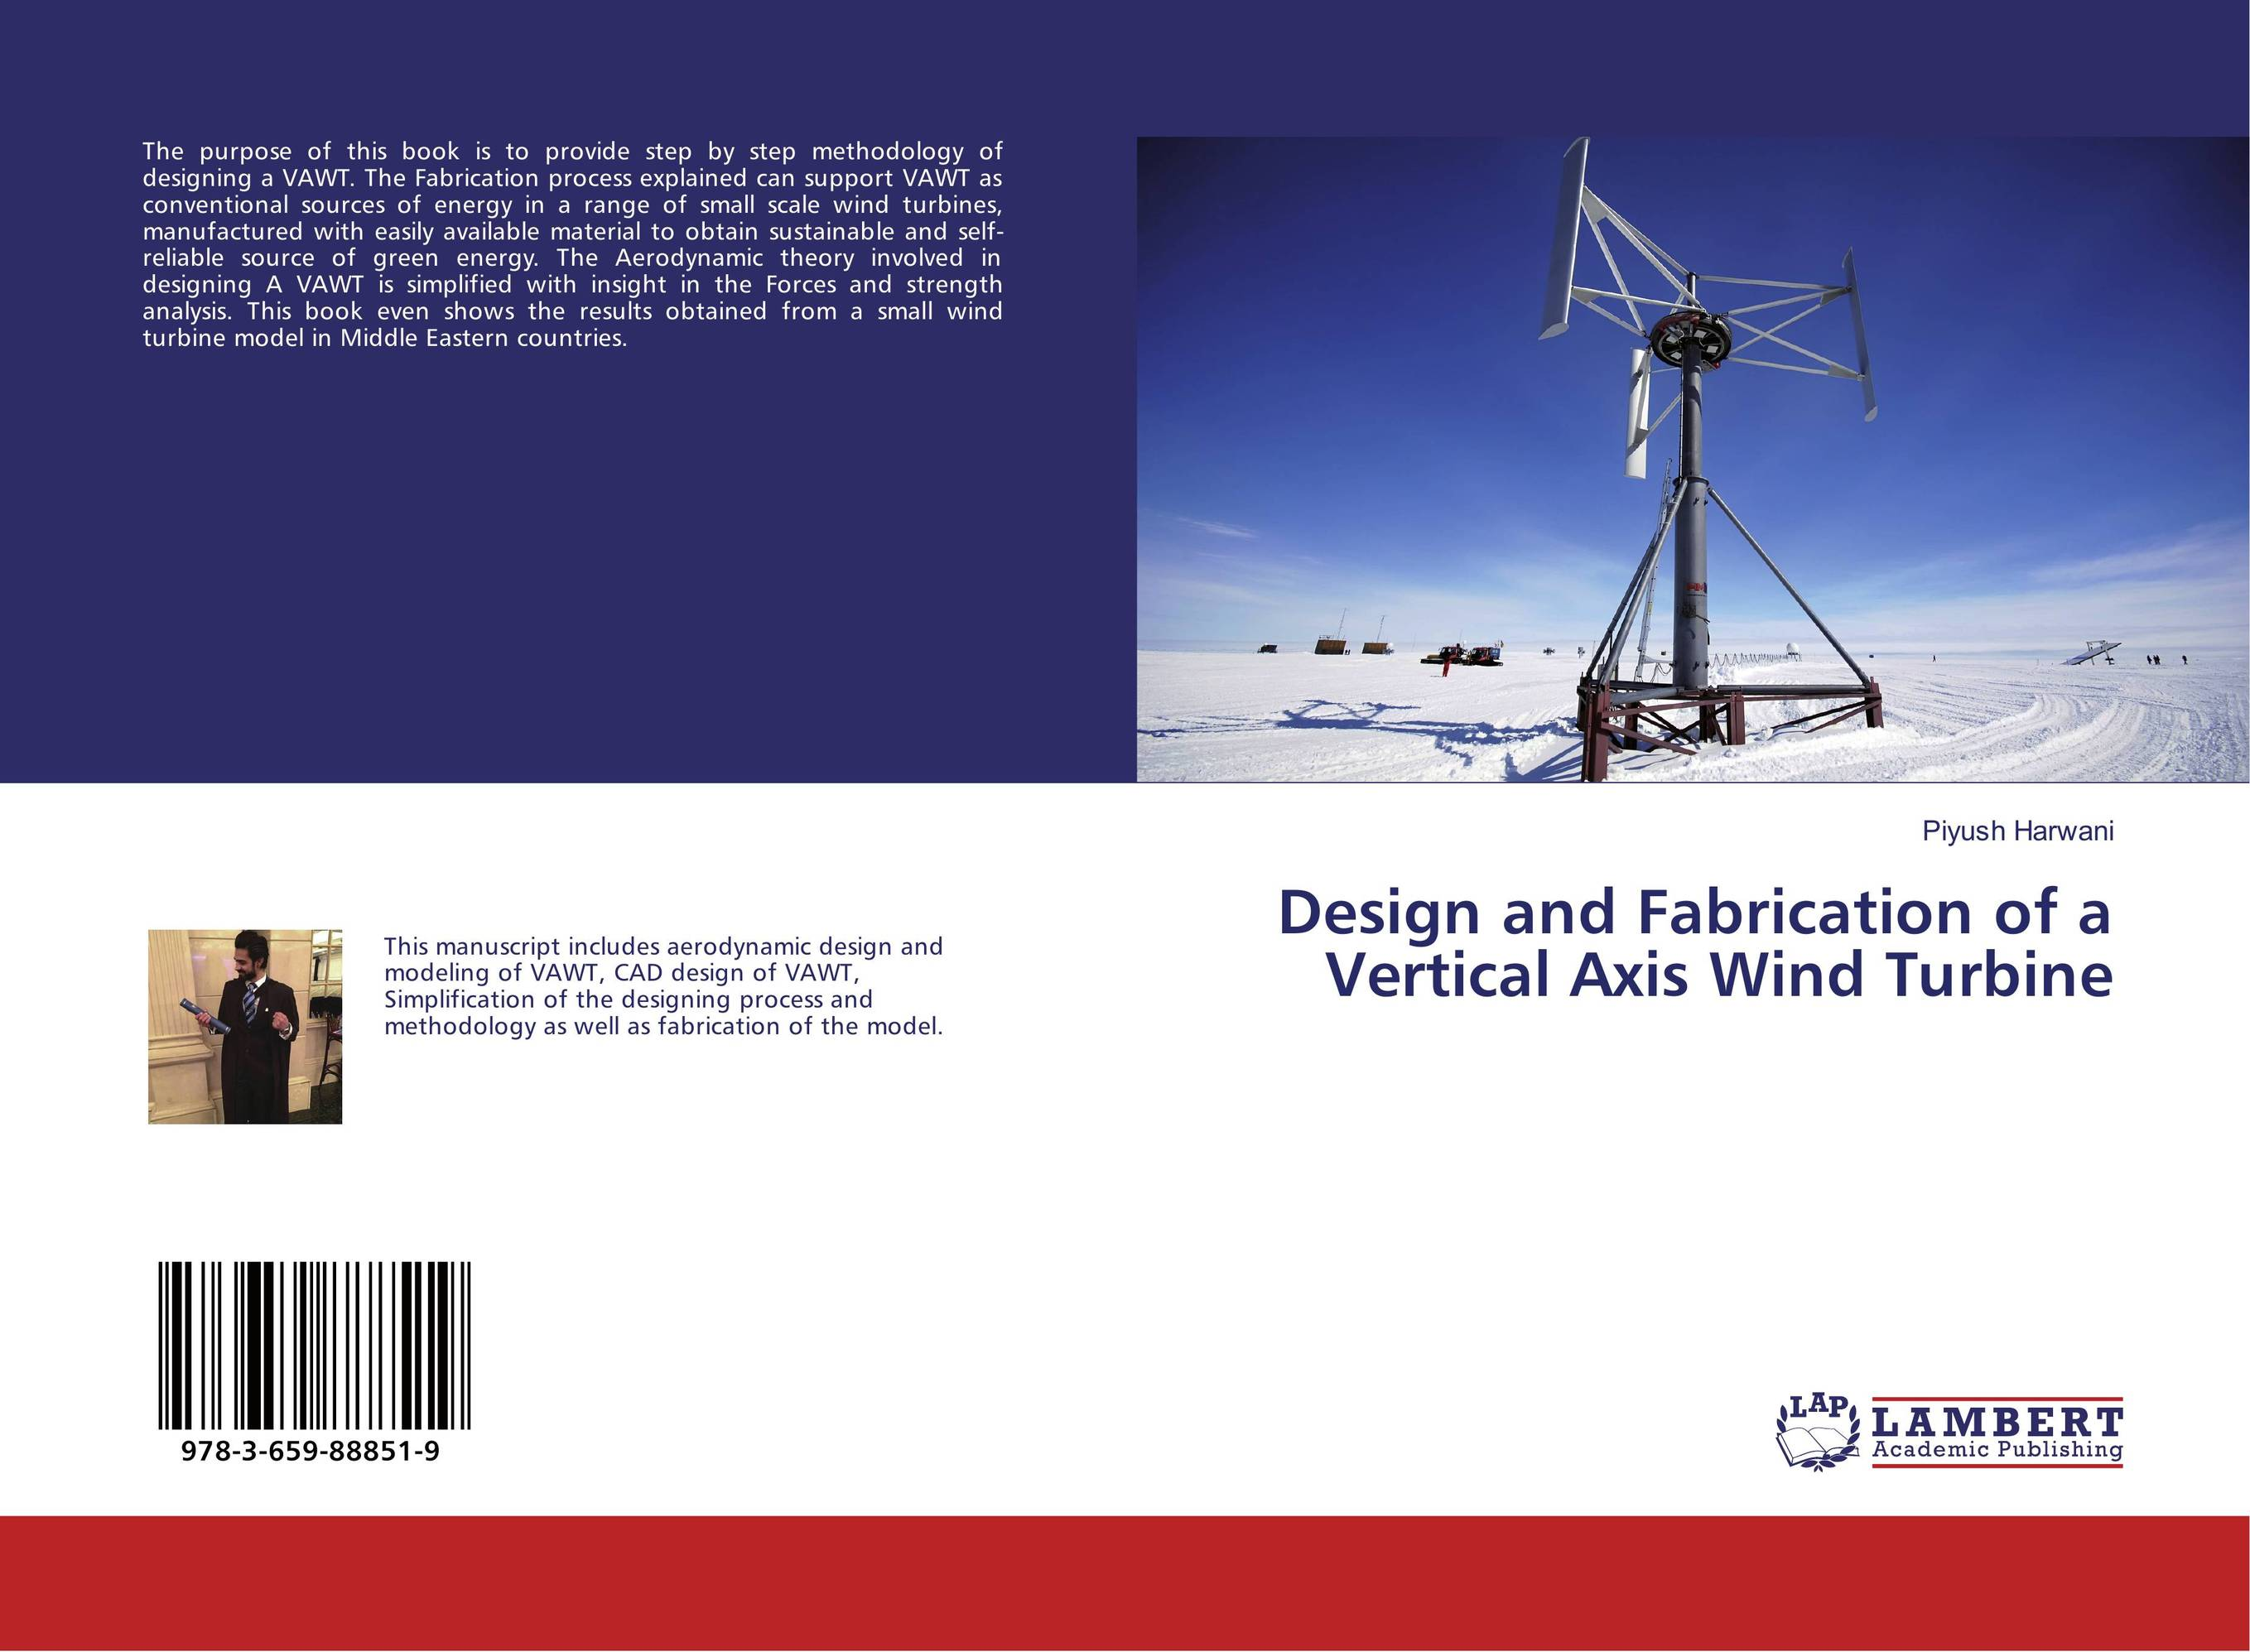 Design and Fabrication of a Vertical Axis Wind Turbine ароматизатор aroma wind 002 a